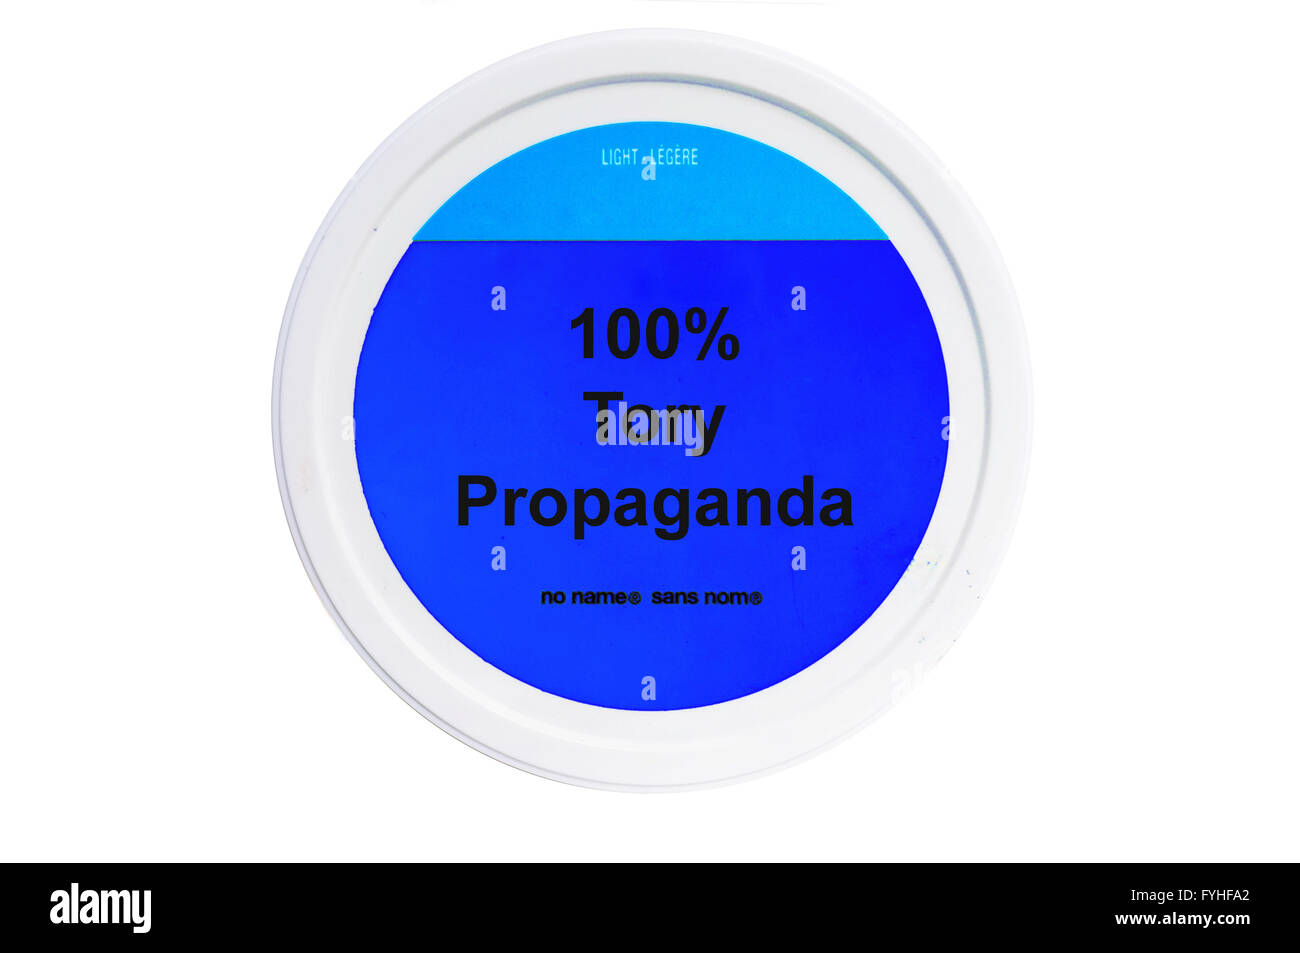 A tub with 100% Tory Propaganda written on the label photographed against a white background. - Stock Image